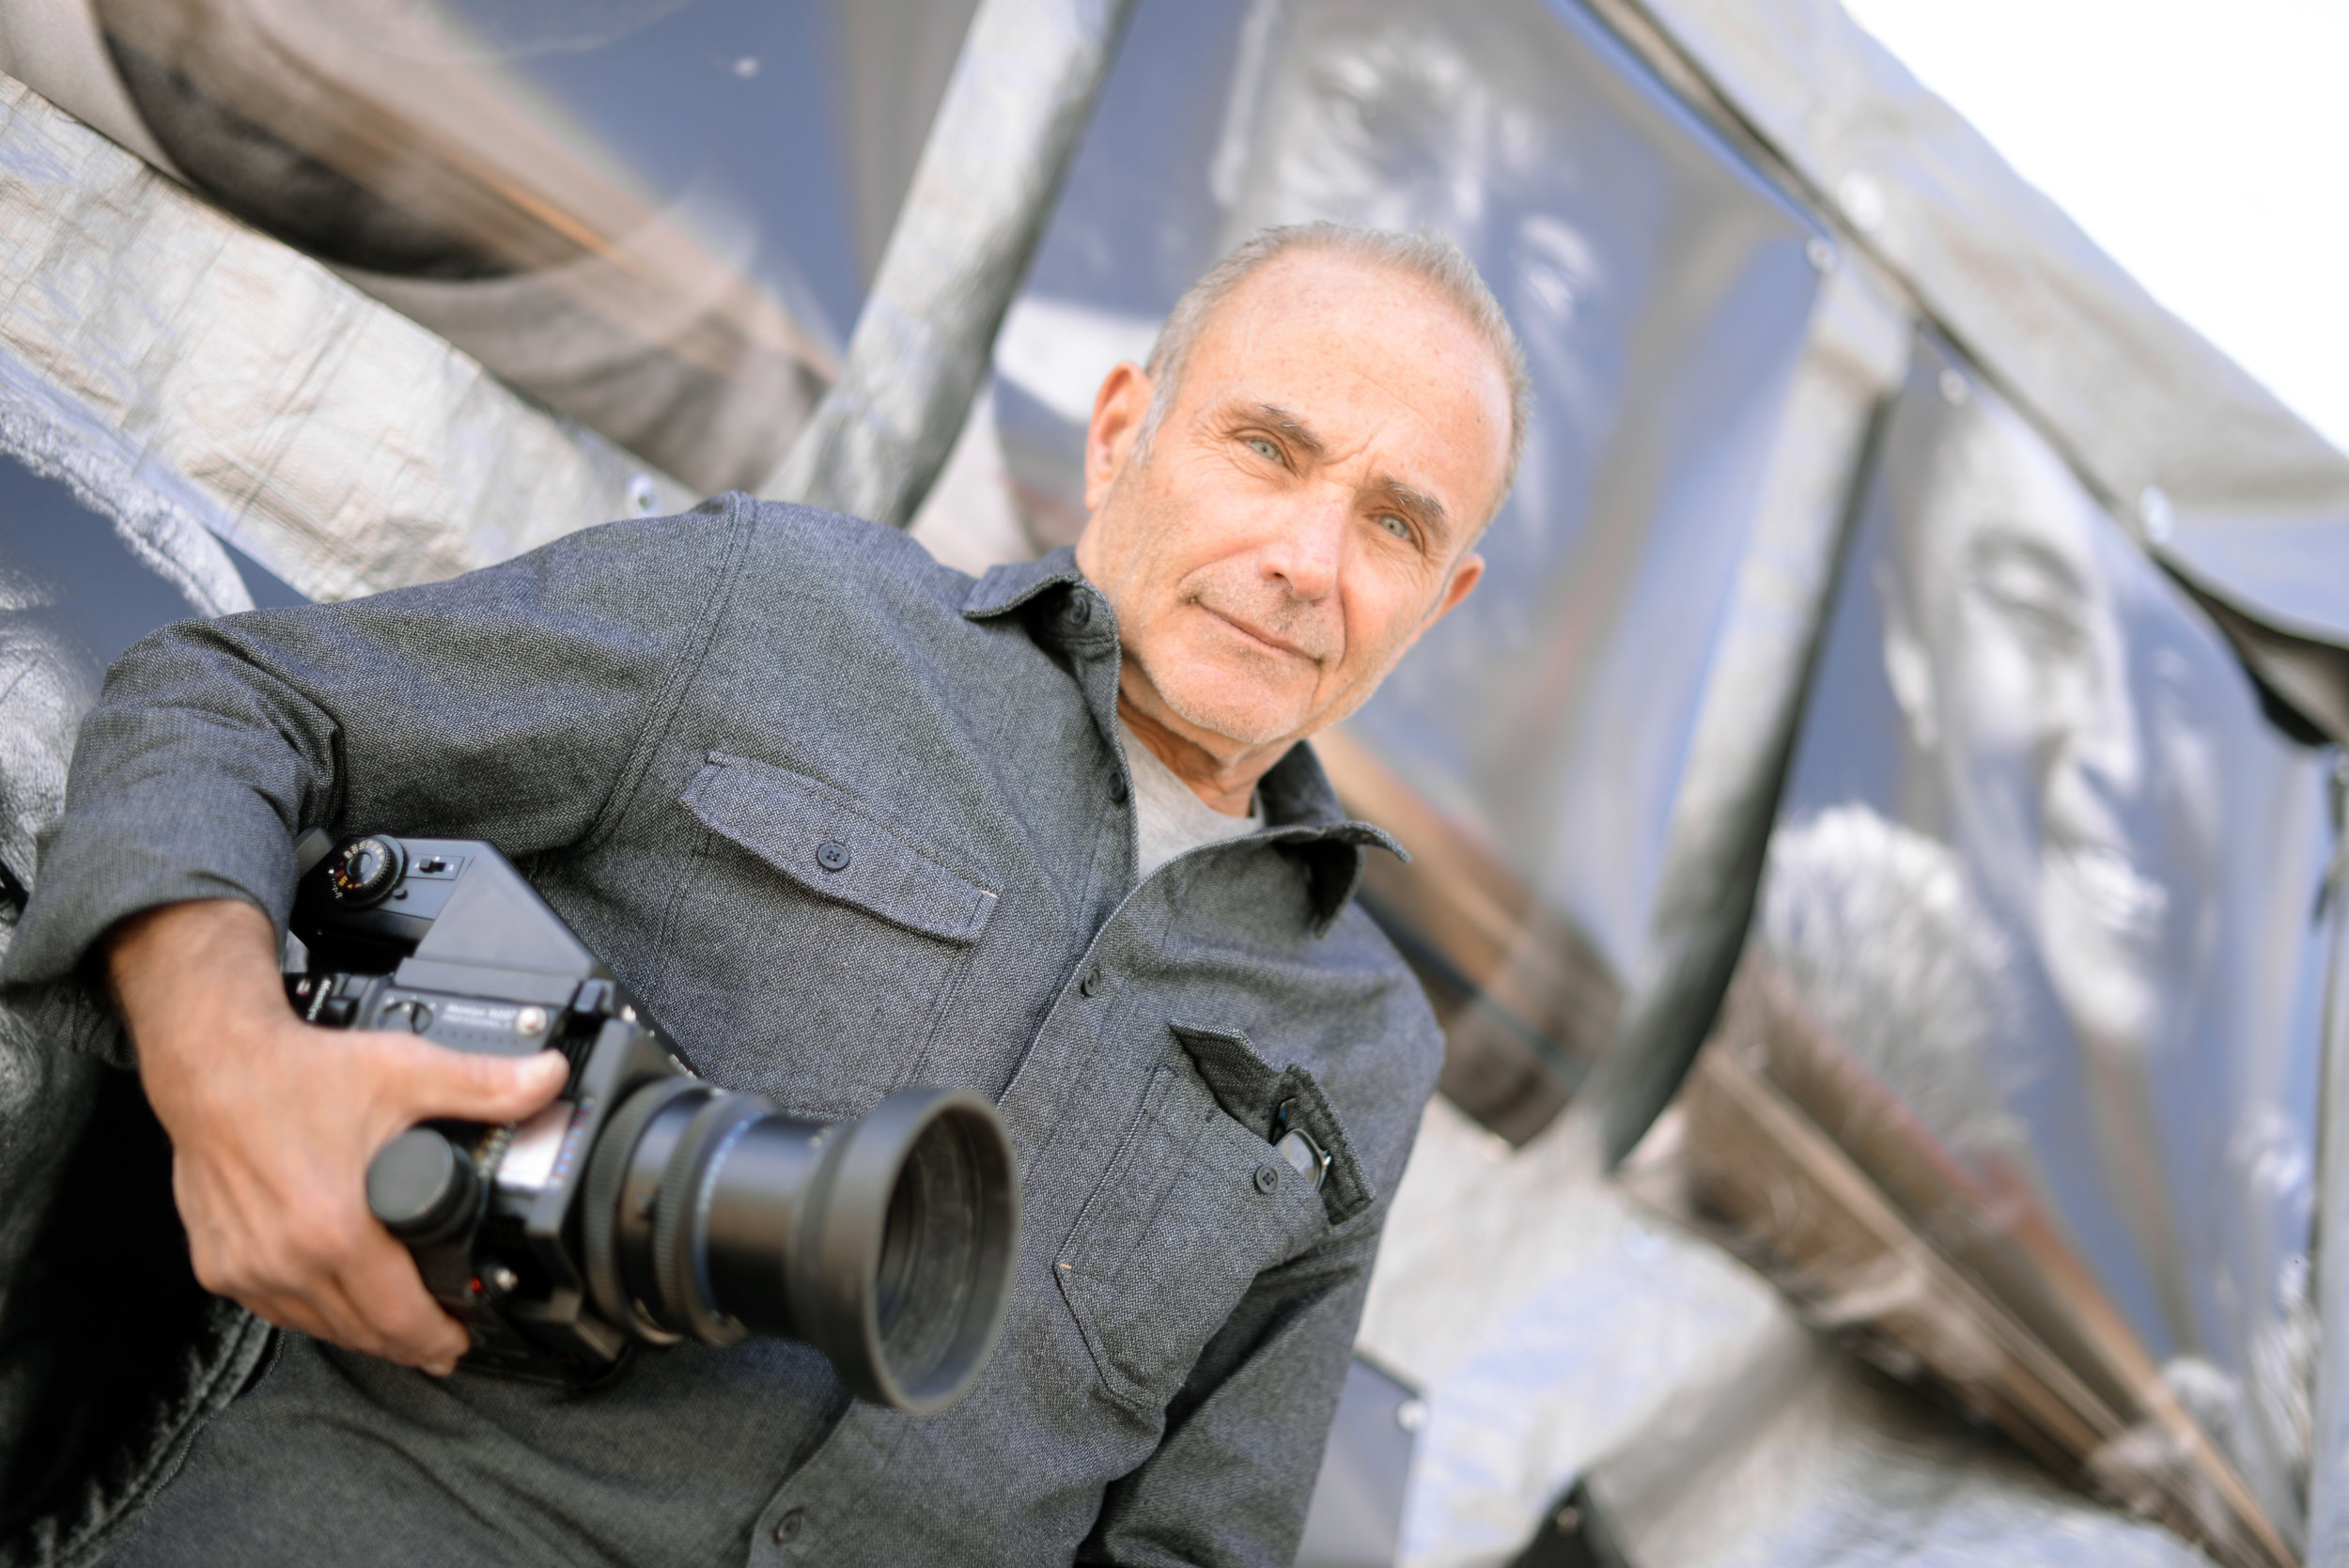 Orie Rutchik outside his mobile portrait studio near the Berkeley Drop-In Center on Adeline Street at Harmon. Photo: Chris Polydoroff    Click here to watch video   by Chris Polydoroff about the Berkeley Portrait Project.